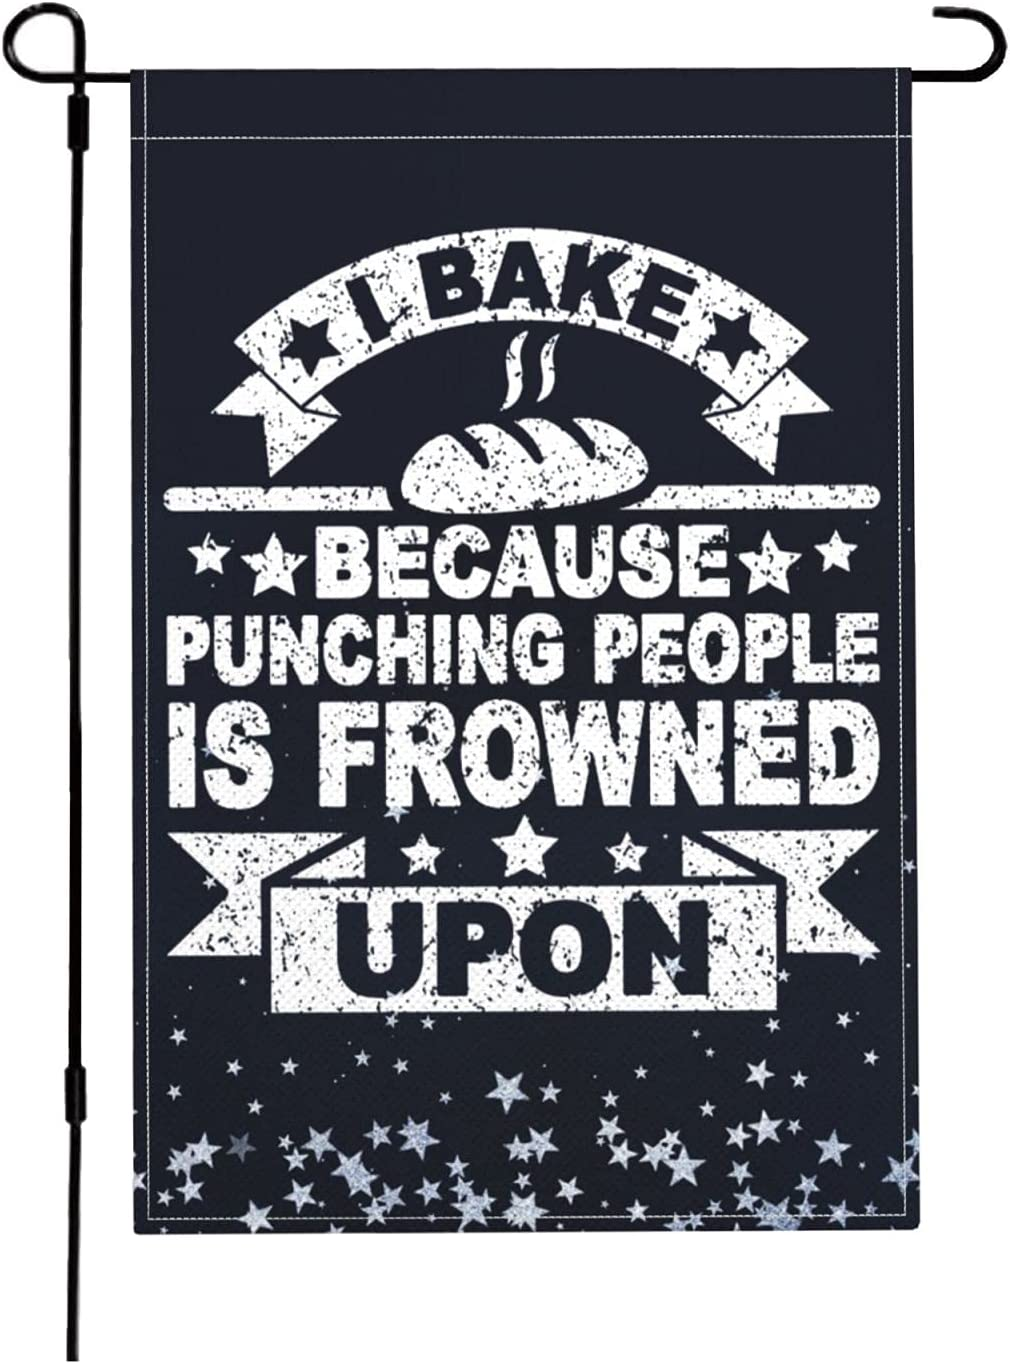 Leumius I Bake Because Punching People is Frowned Upon 1 Garden Flag 12x18 Inch Imitation Linen Decorative Yard Banner for Outside Party Home